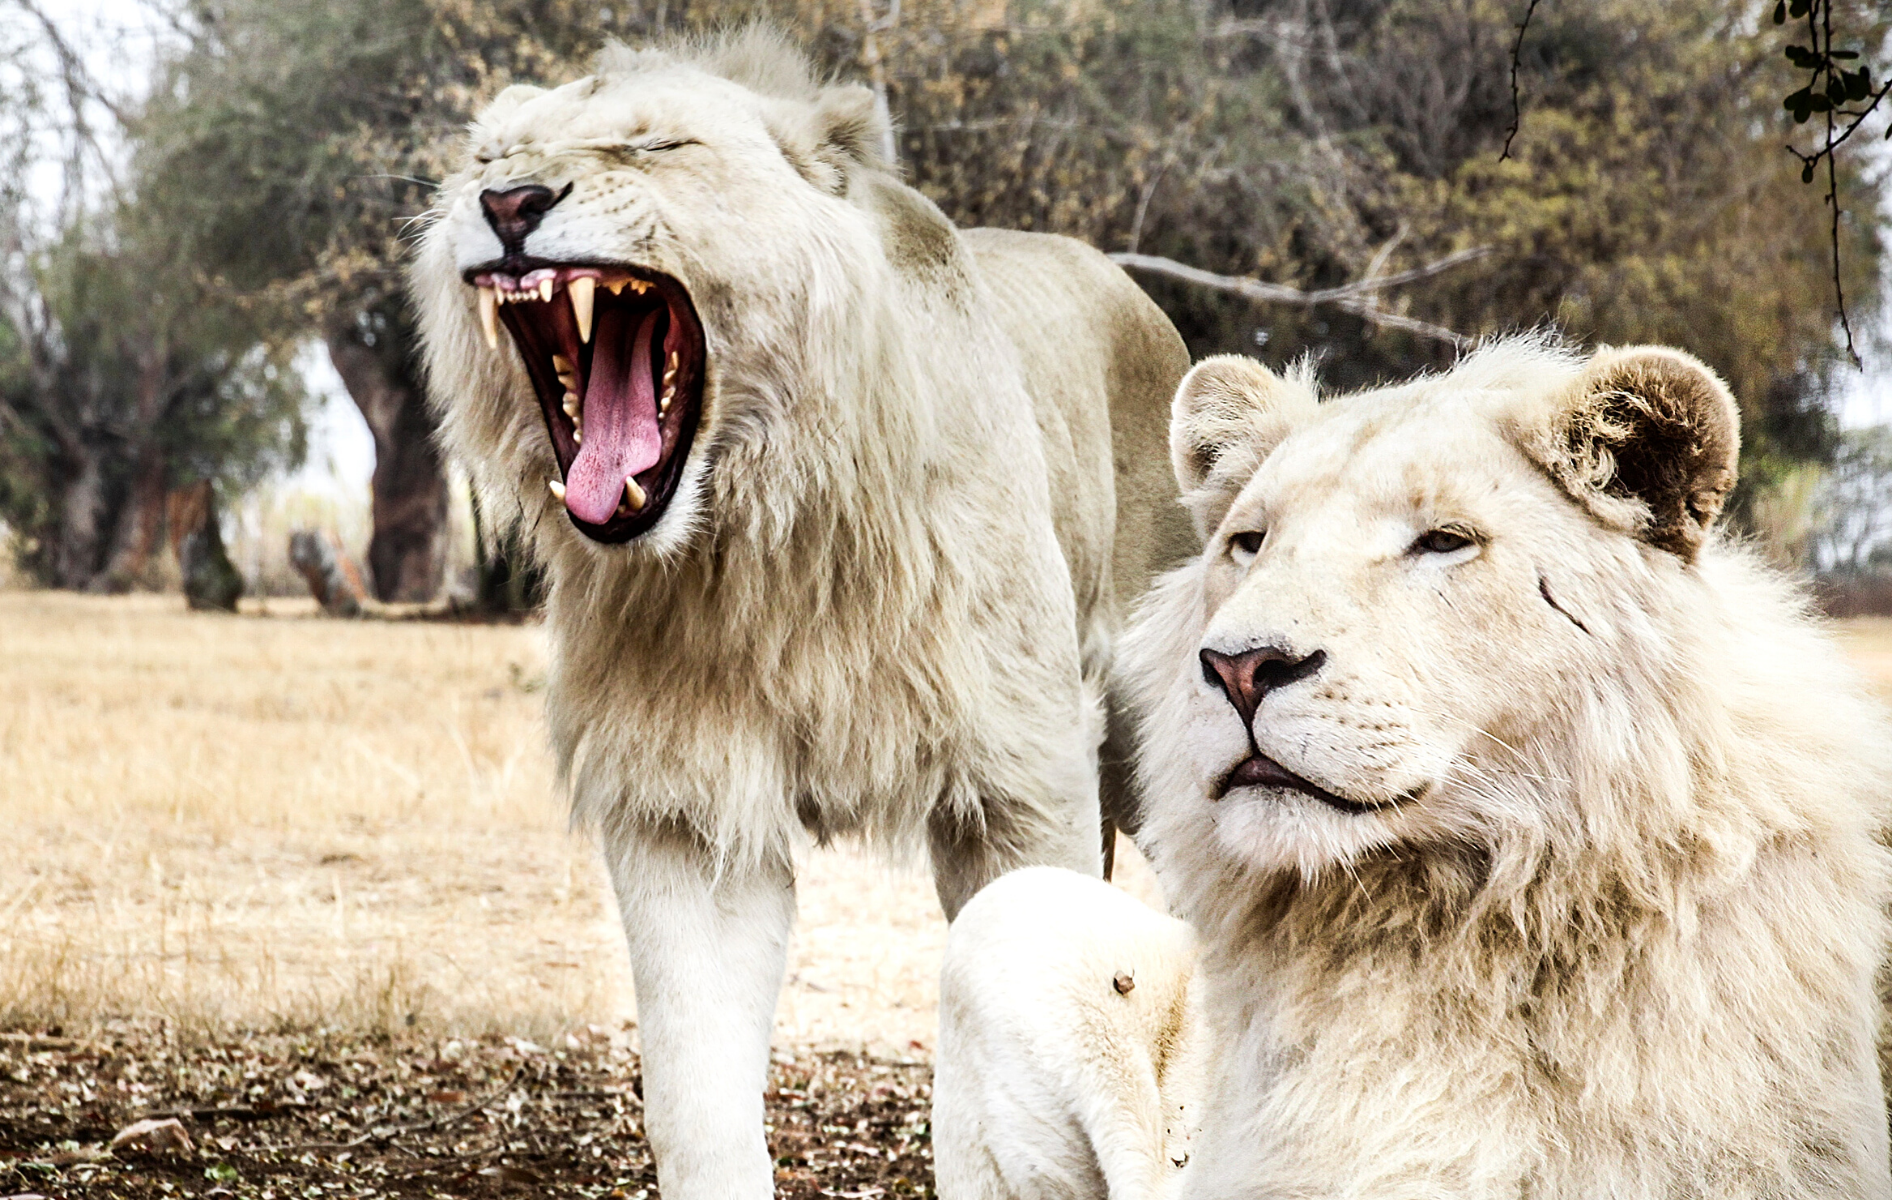 Lions blancs Africain.